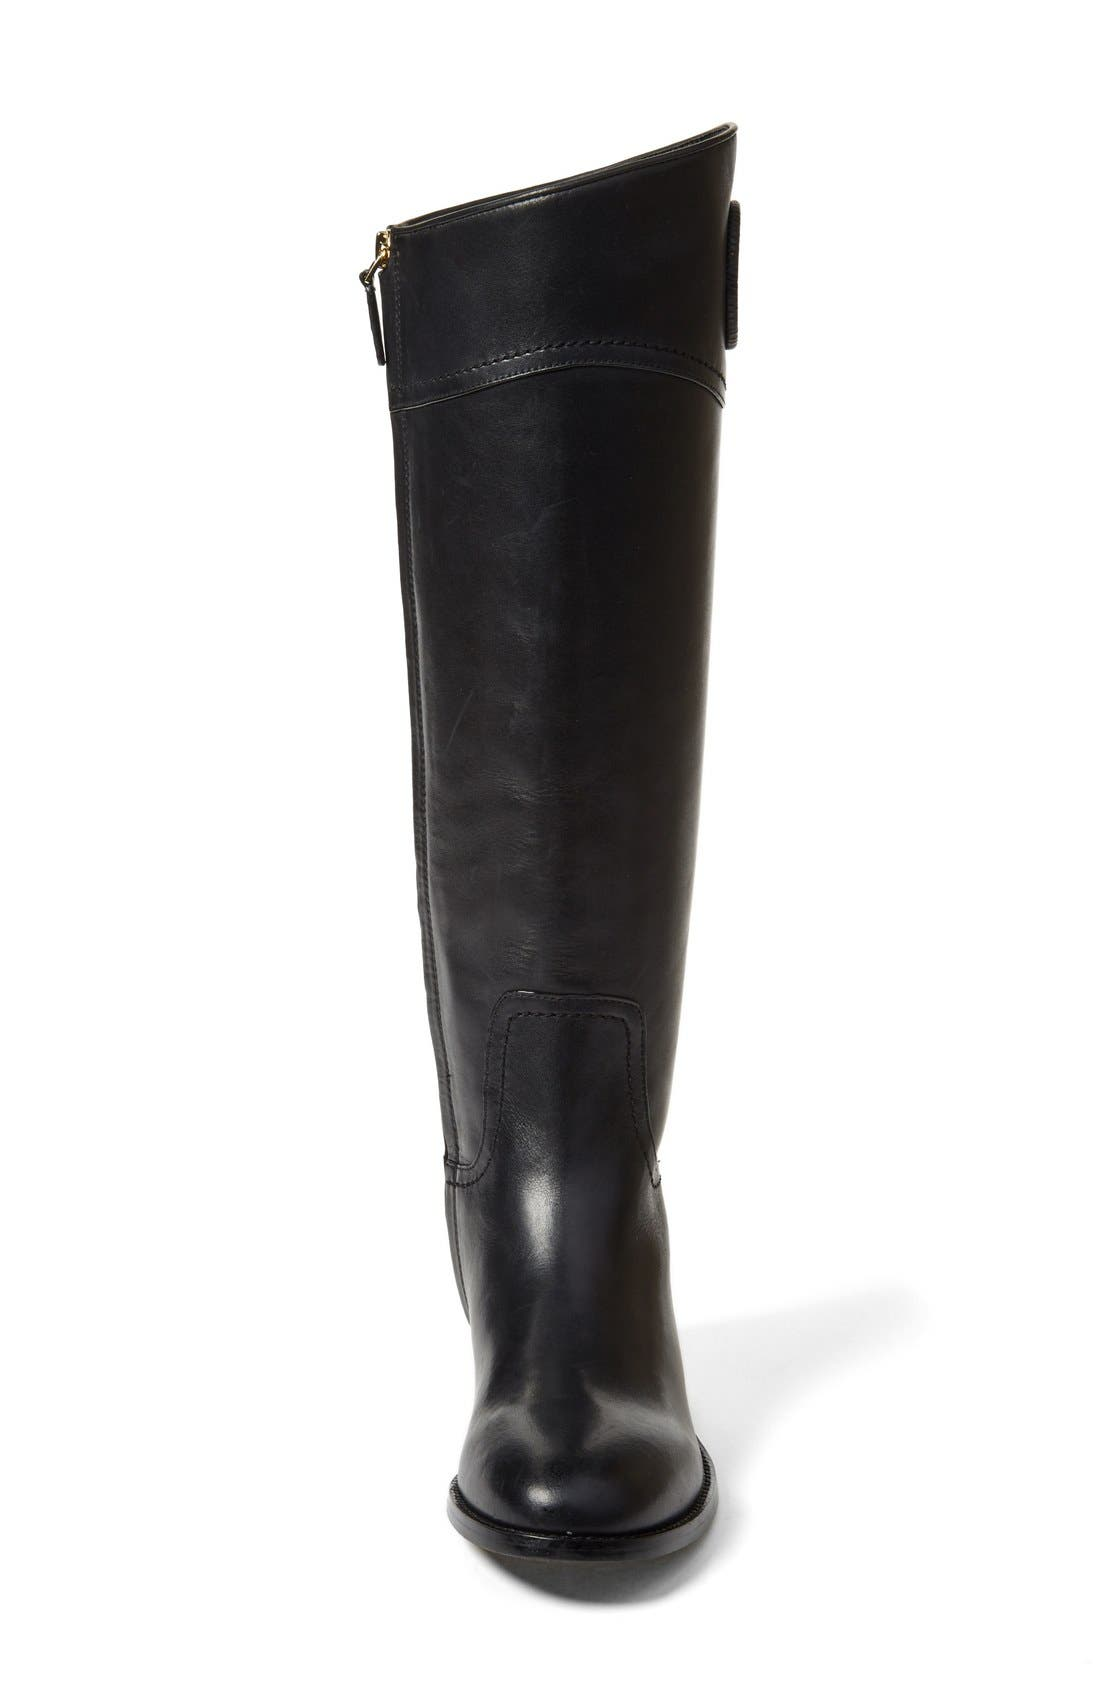 Alternate Image 3  - Tory Burch 'Ashlynn' Wide Calf Riding Boot (Women)